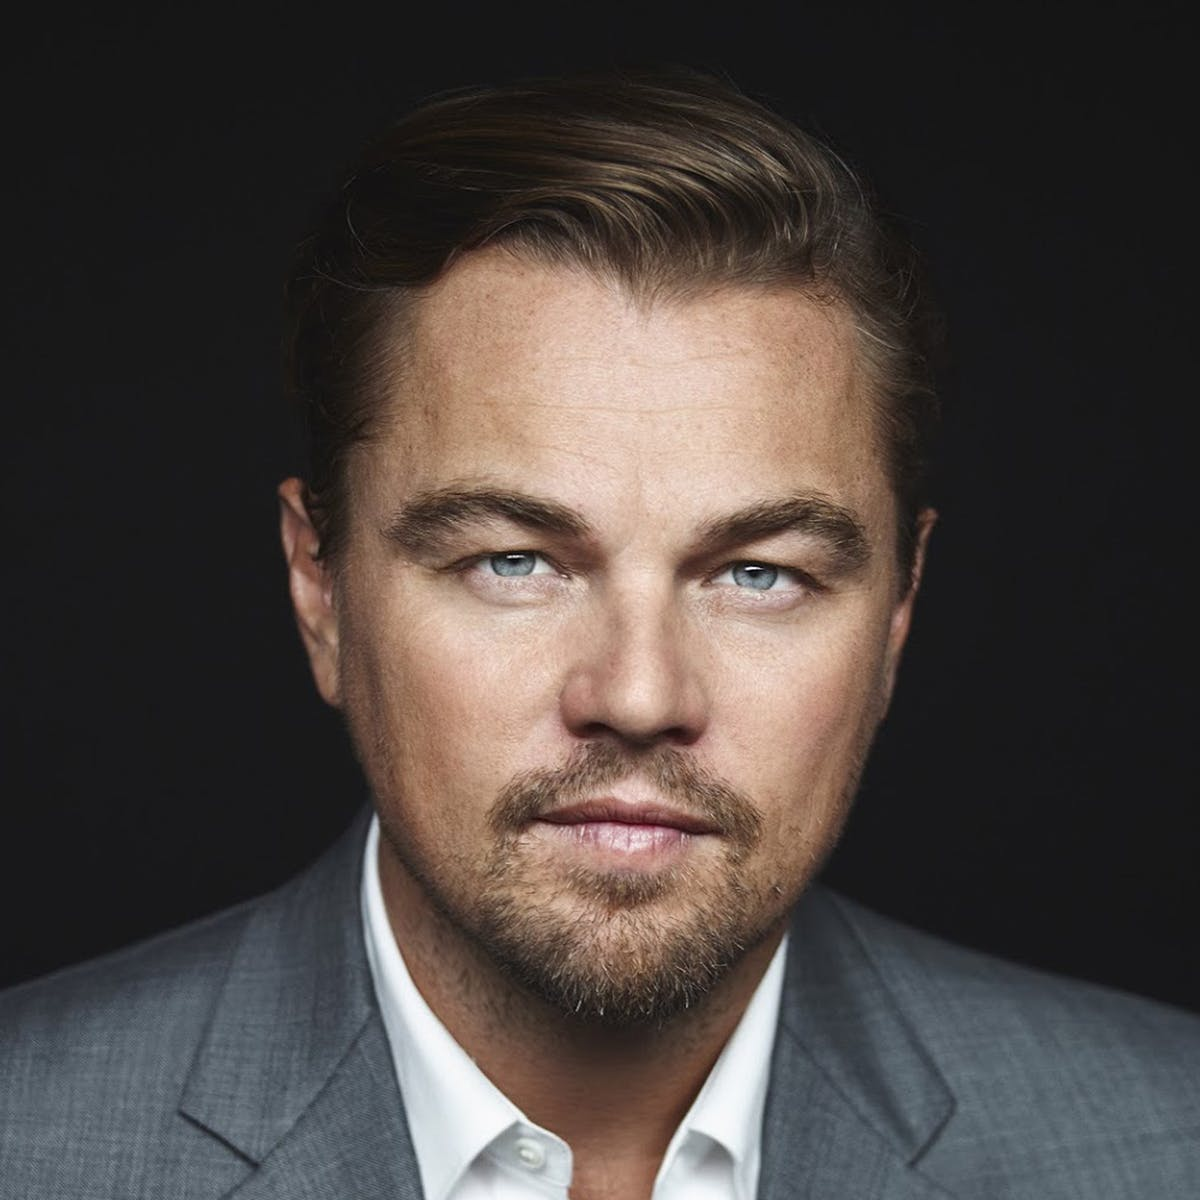 Diamond Foundry is backed by actor Leonardo Dicaprio.